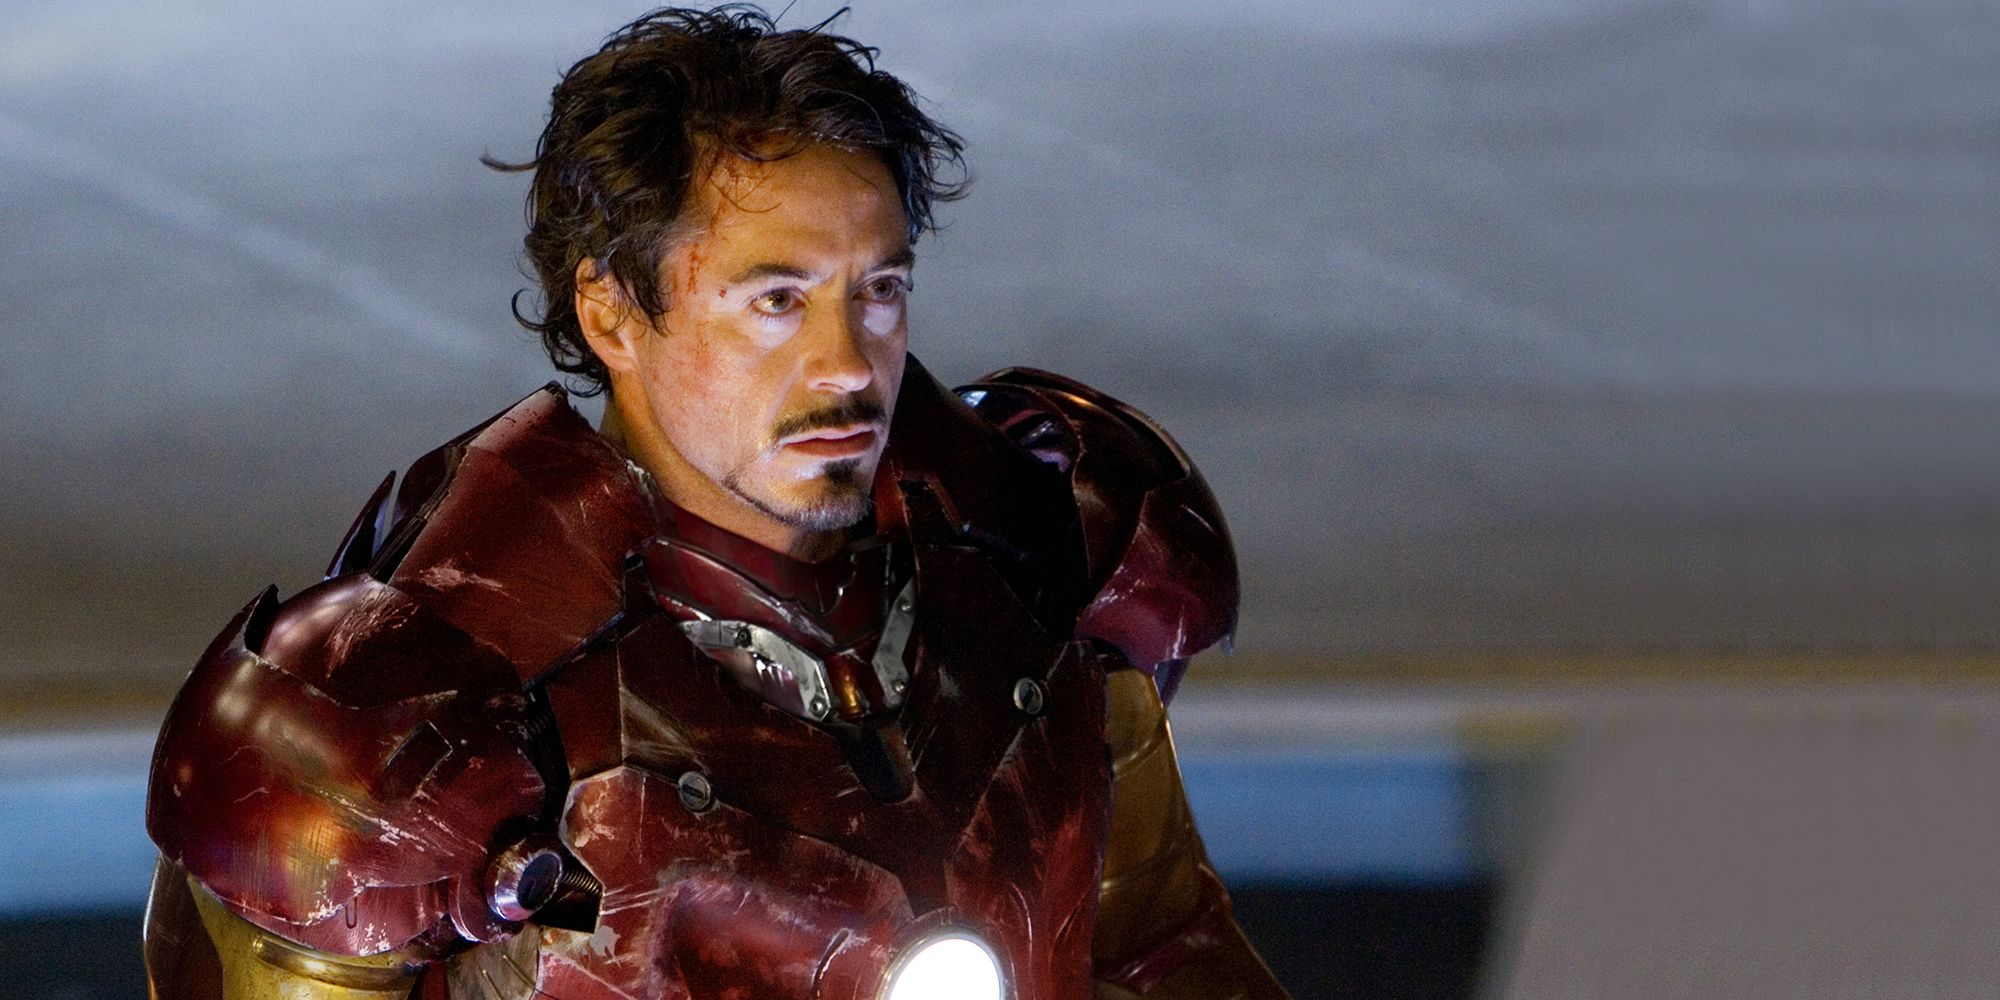 Iron Man 1 Robert Downey Jr